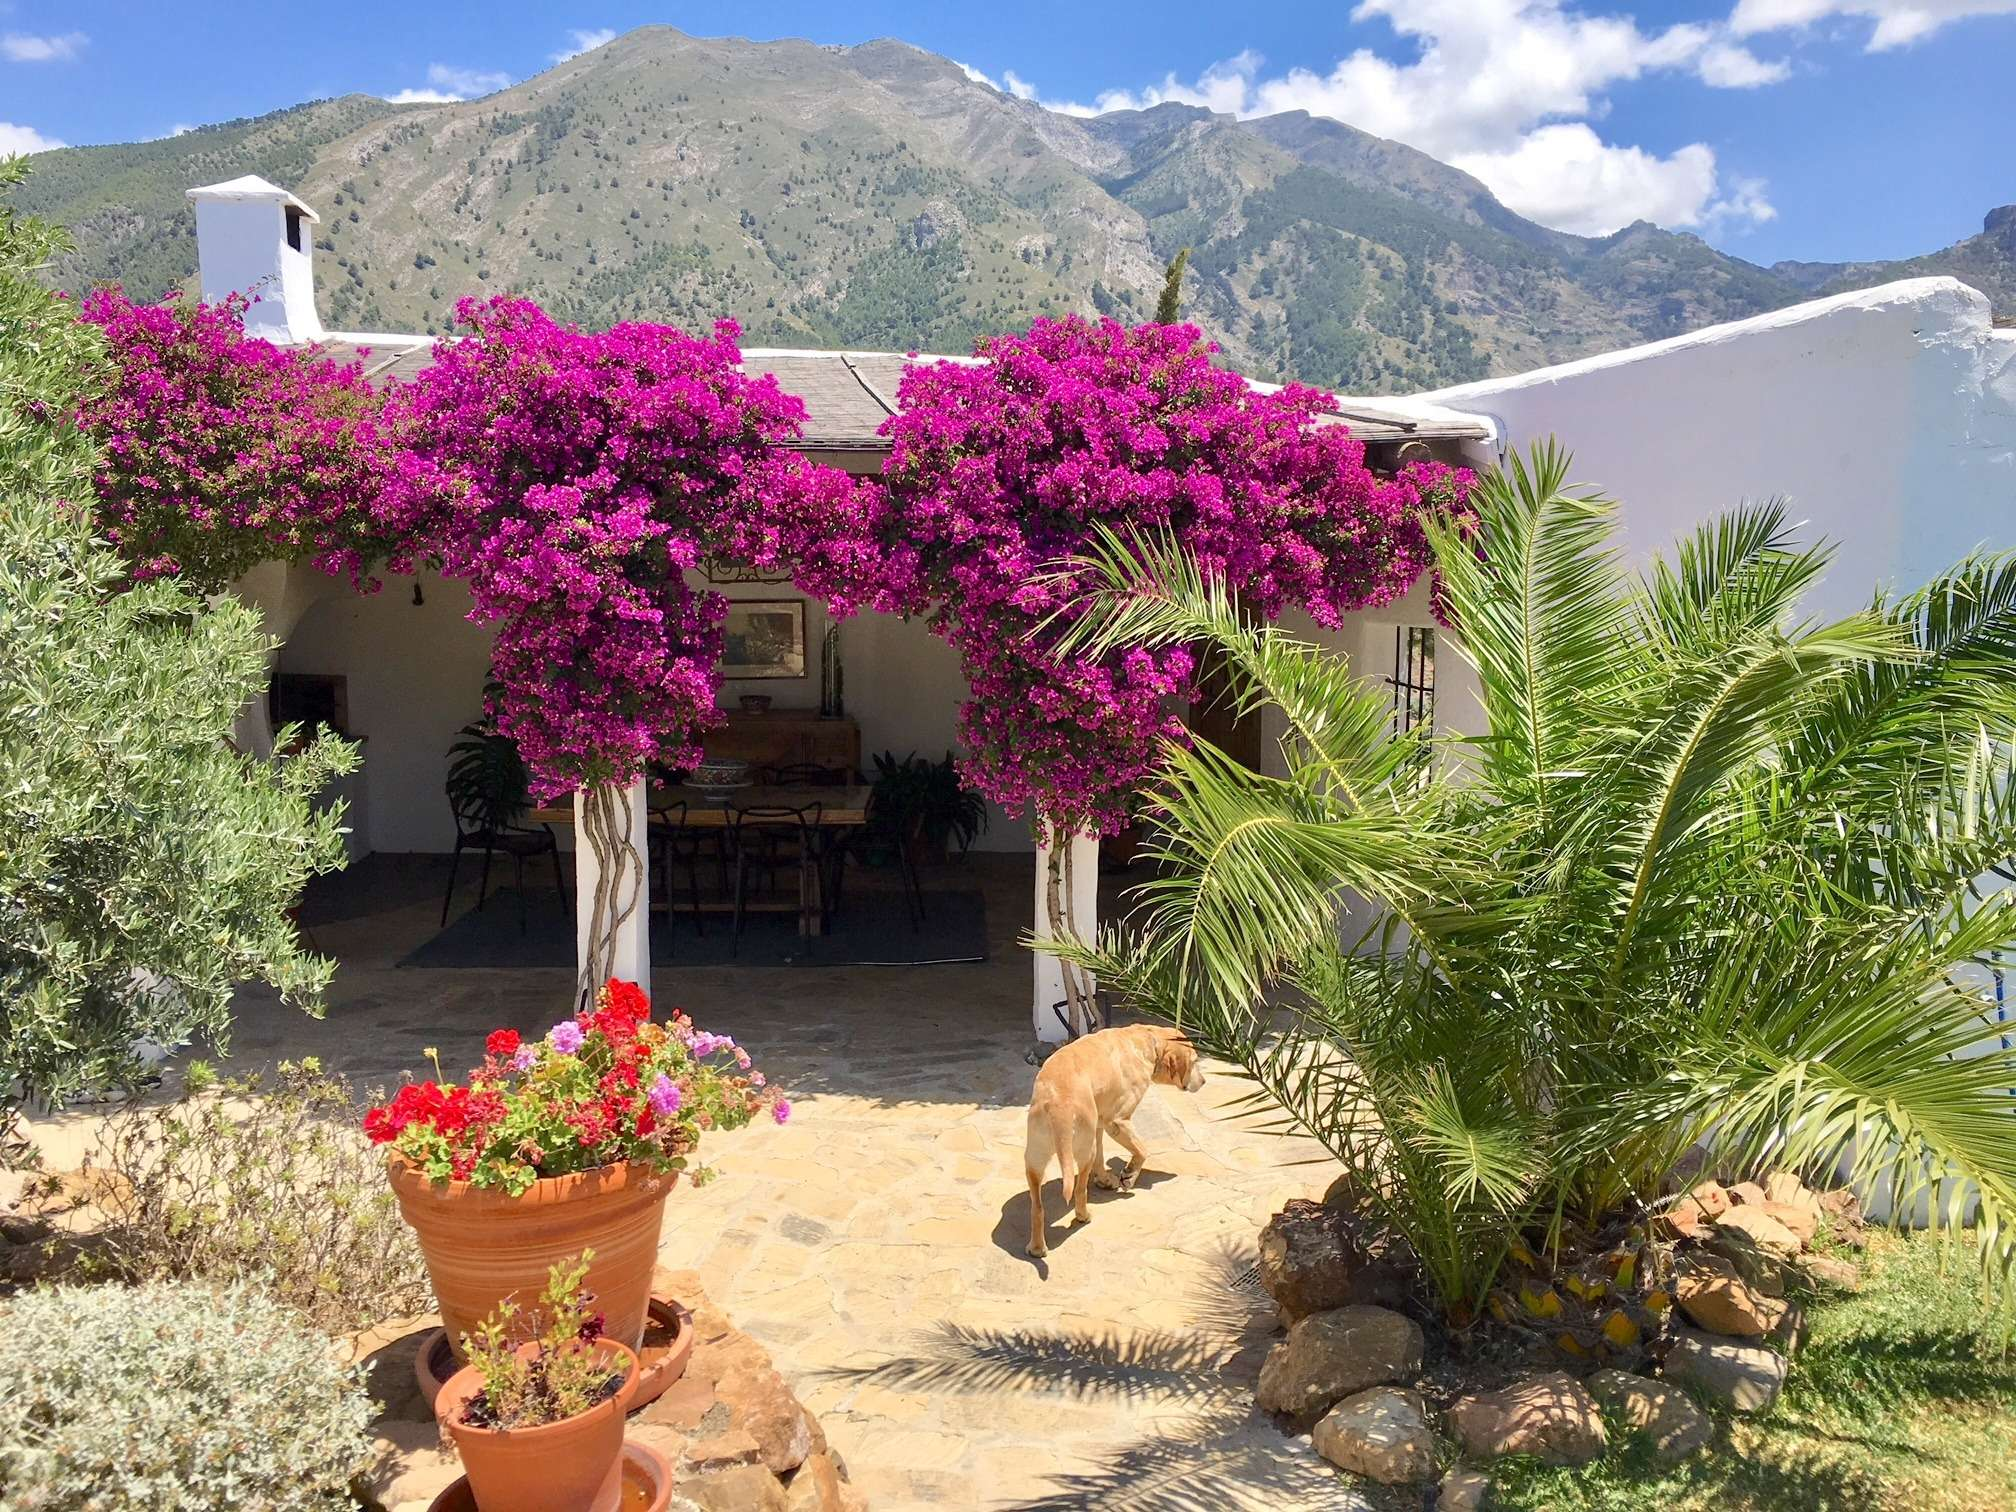 Dog walks around the outdoor area with purple blooming flowers at Villa El Carligto in Spain